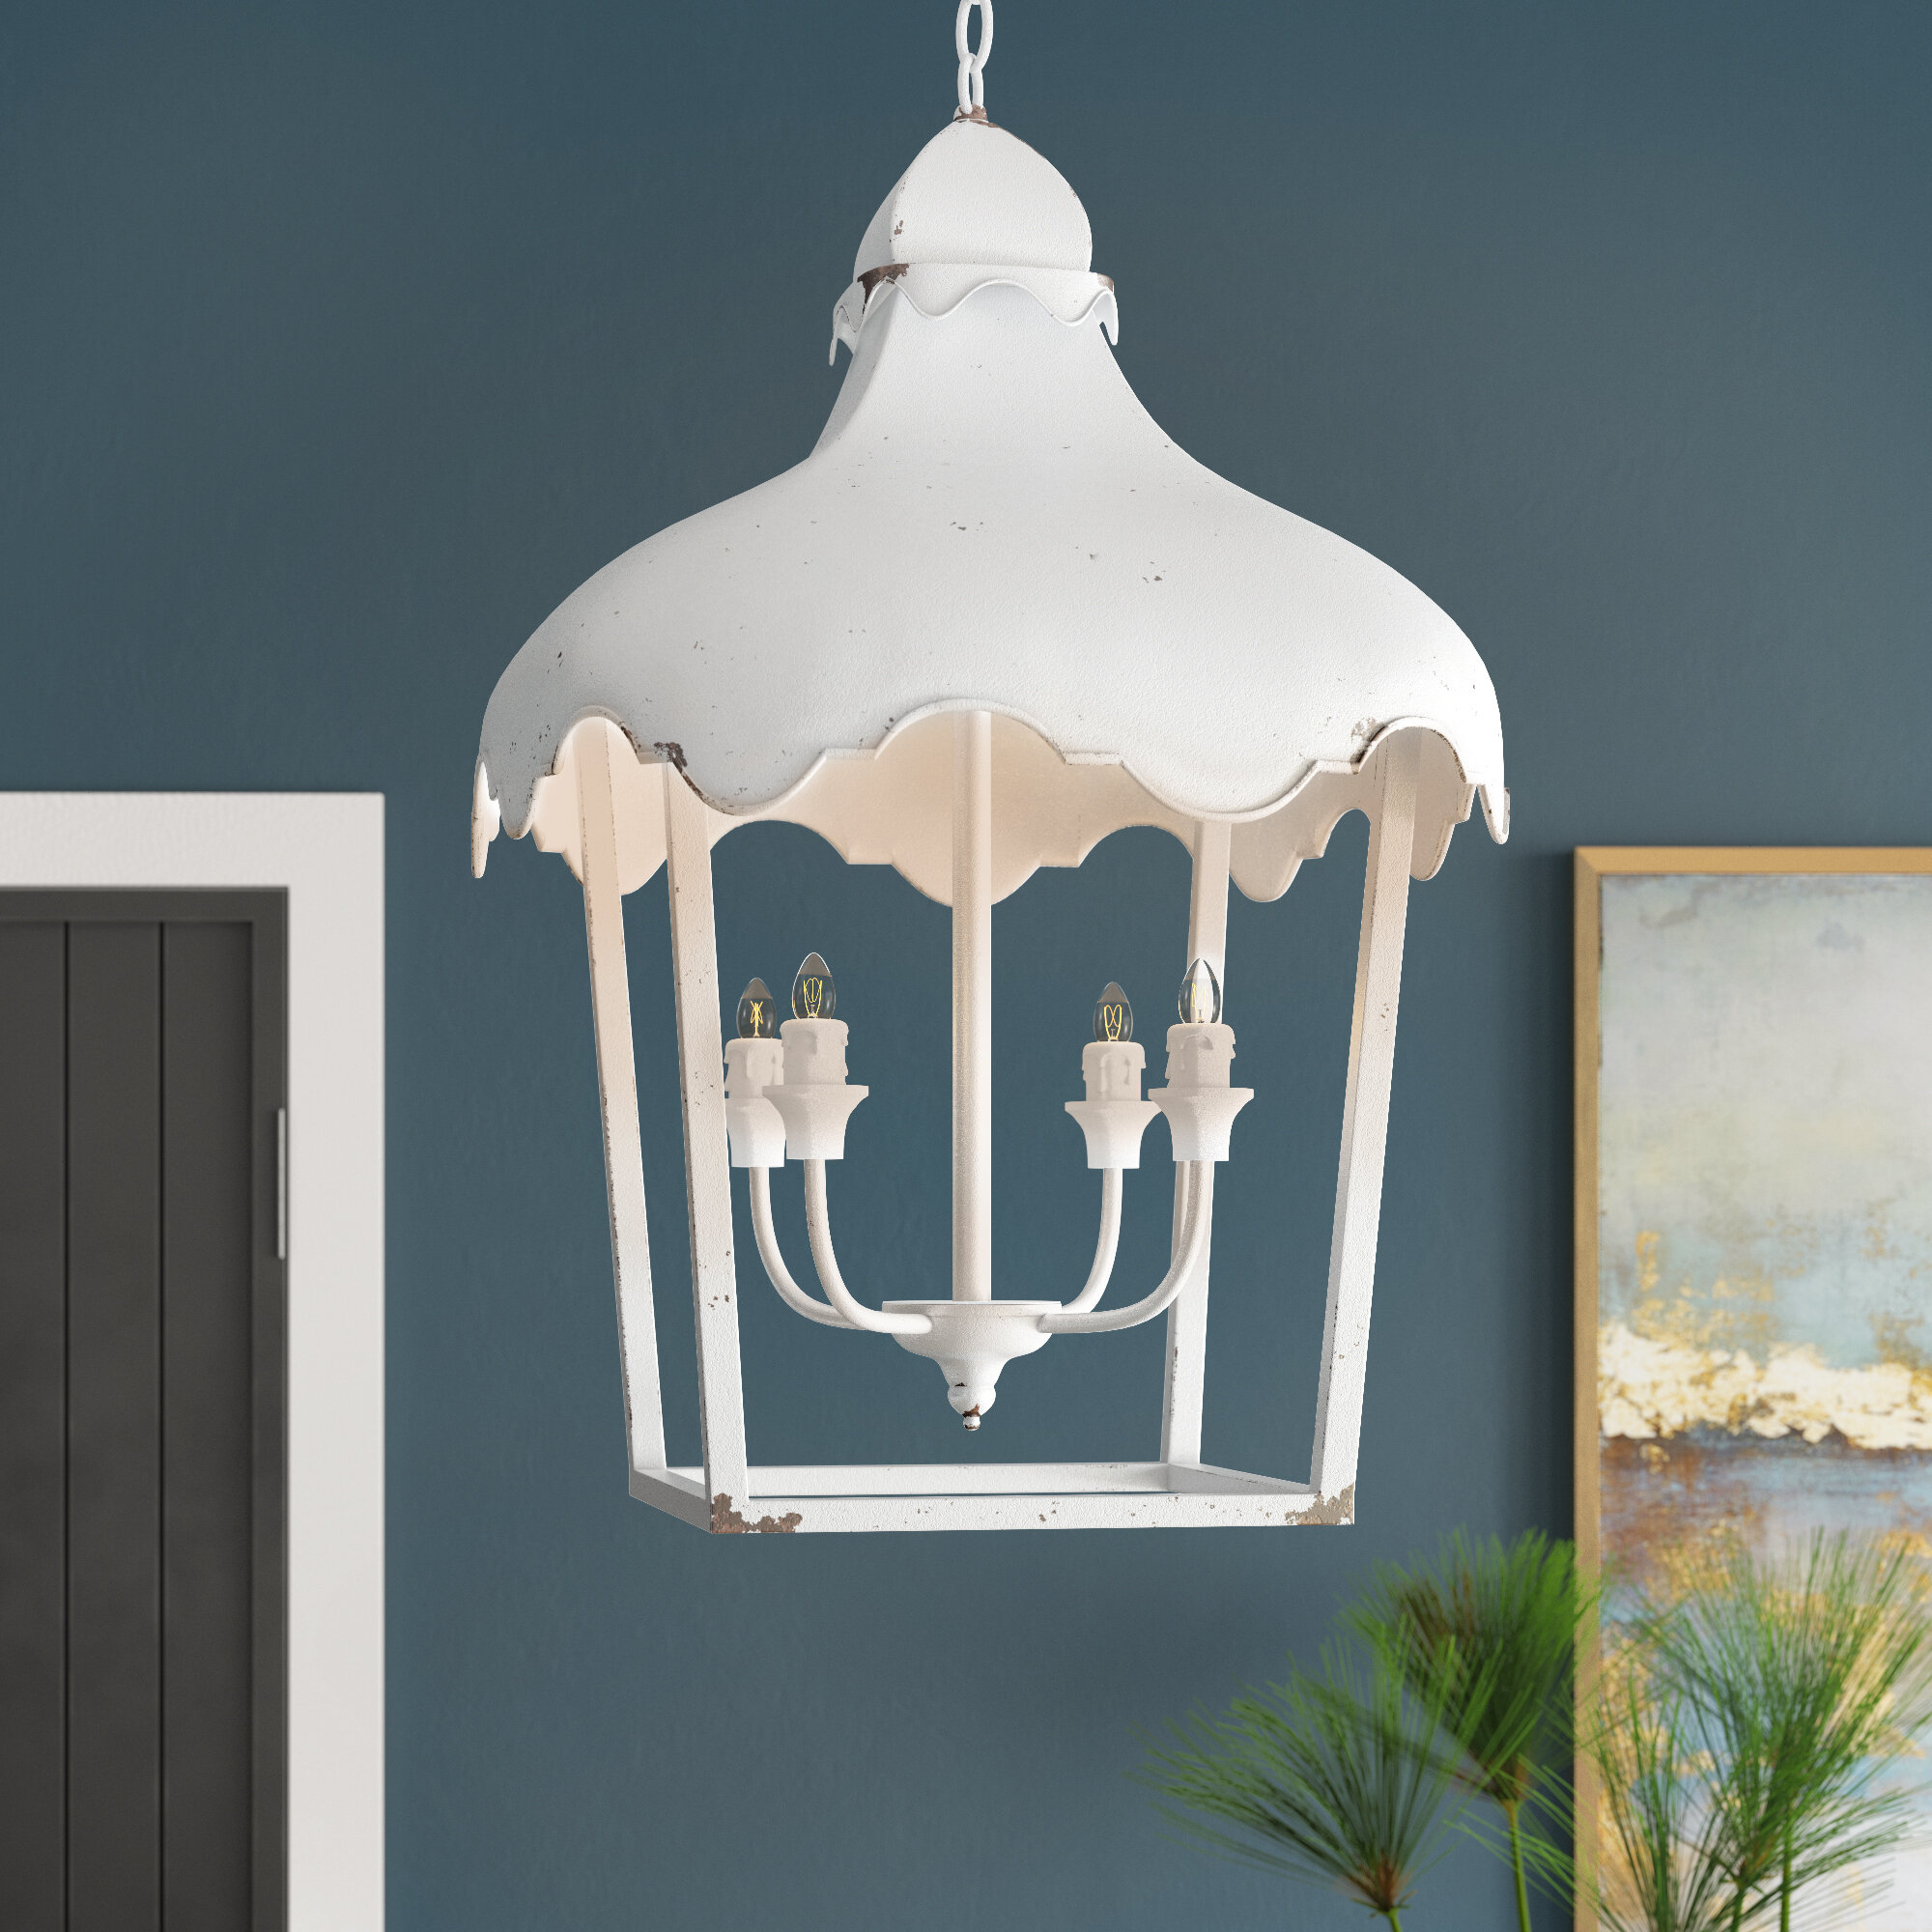 Lussan 4-Light Lantern Geometric Pendant & Reviews | Joss & Main with Isoline 2-Light Lantern Geometric Pendants (Image 19 of 30)